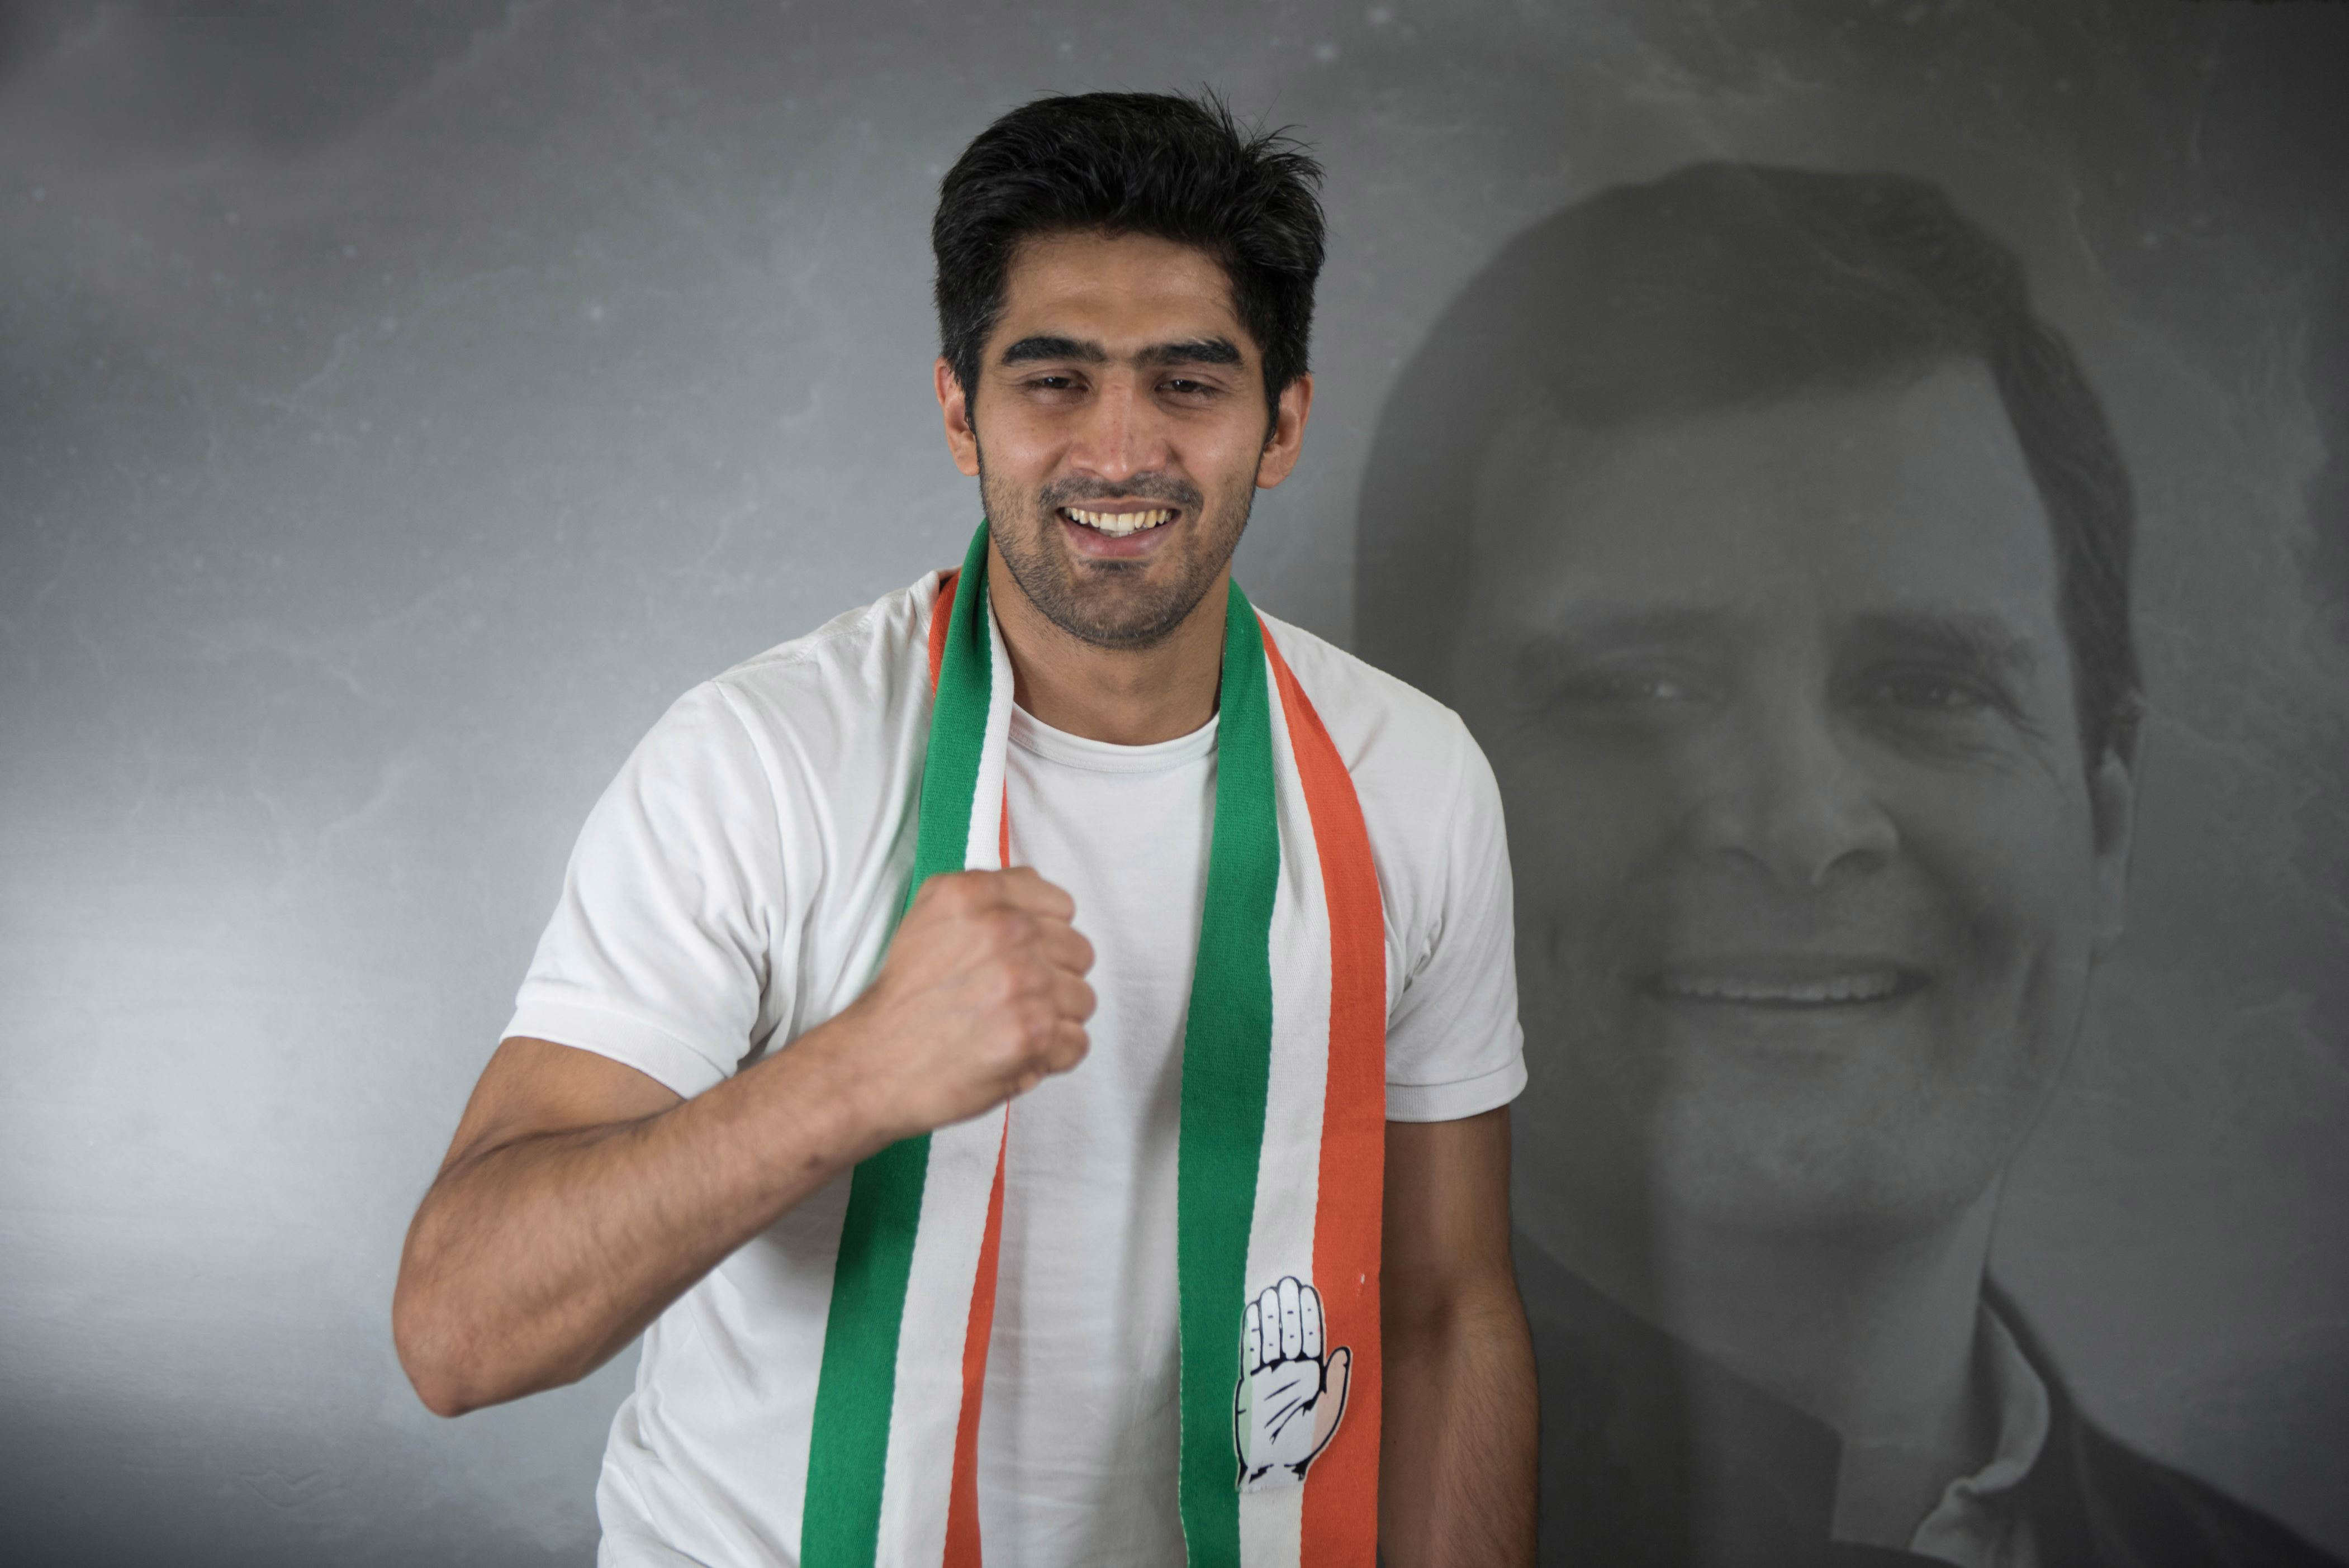 Slide 20 of 31: NEW DELHI, INDIA - APRIL 24: Vijender Singh, Congress candidate from South Delhi for Lok Sabha elections arrives for a Facebook Live session at Youth Congress Office, Raisina Road, on April 24, 2019 in New Delhi, India. (Photo by Sanchit Khanna/Hindustan Times via Getty Images)